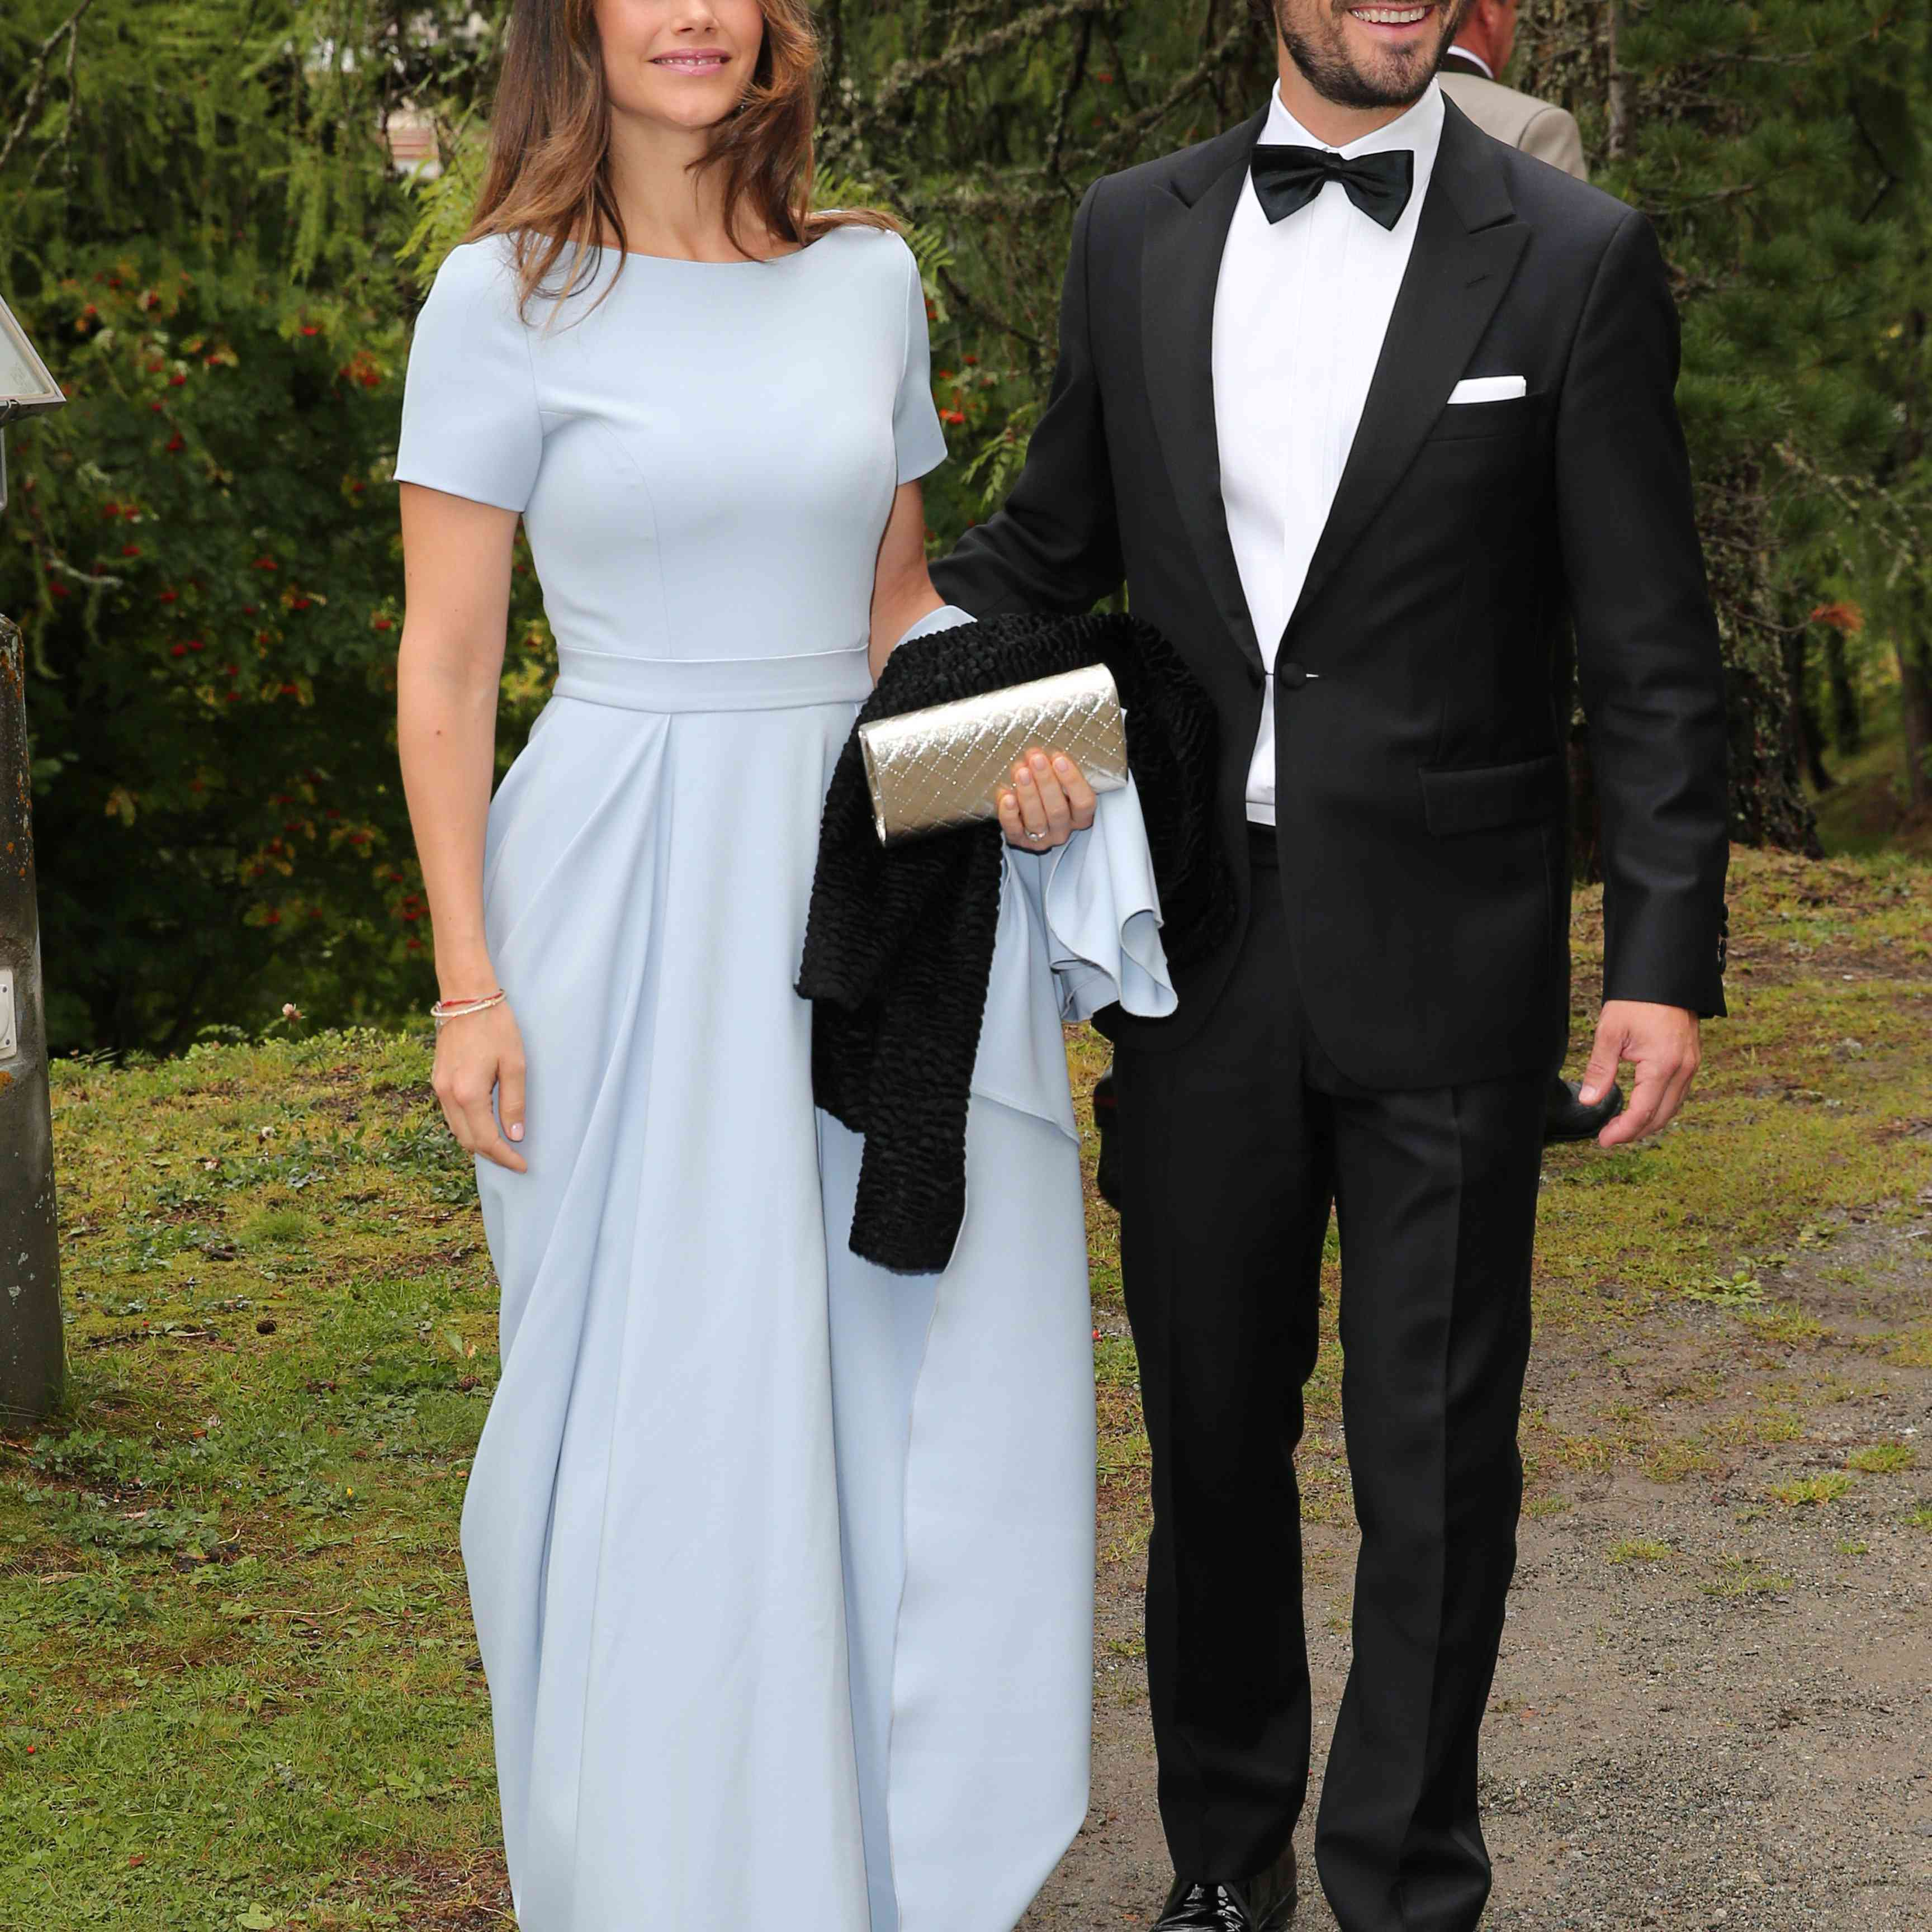 Royal Wedding Guests.The Best Dressed Royal Wedding Guests Of All Time